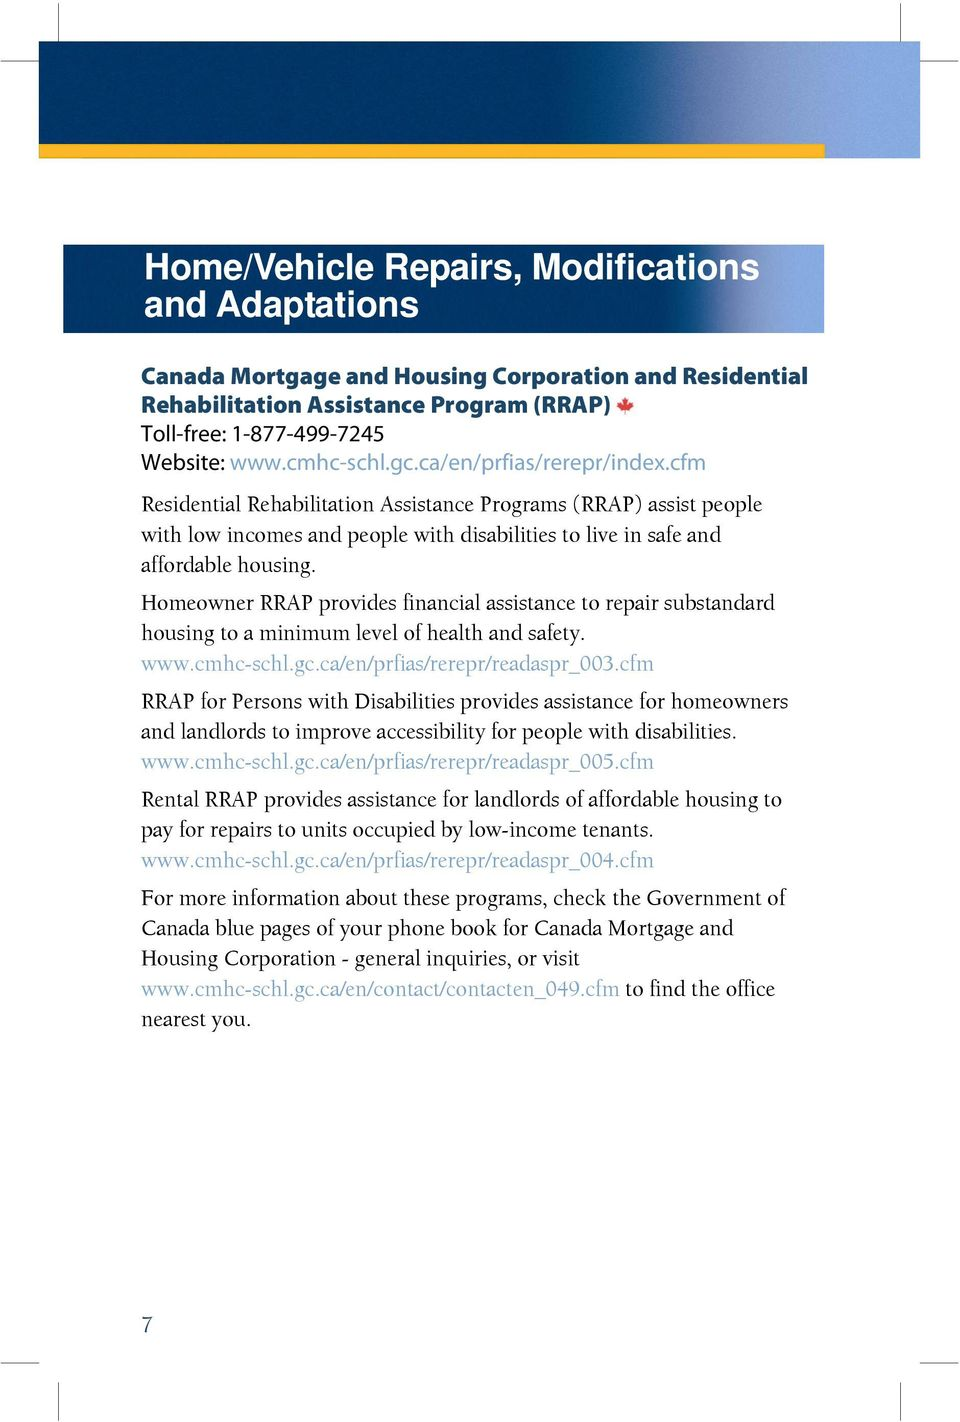 Homeowner RRAP provides financial assistance to repair substandard housing to a minimum level of health and safety. www.cmhc-schl.gc.ca/en/prfias/rerepr/readaspr_003.